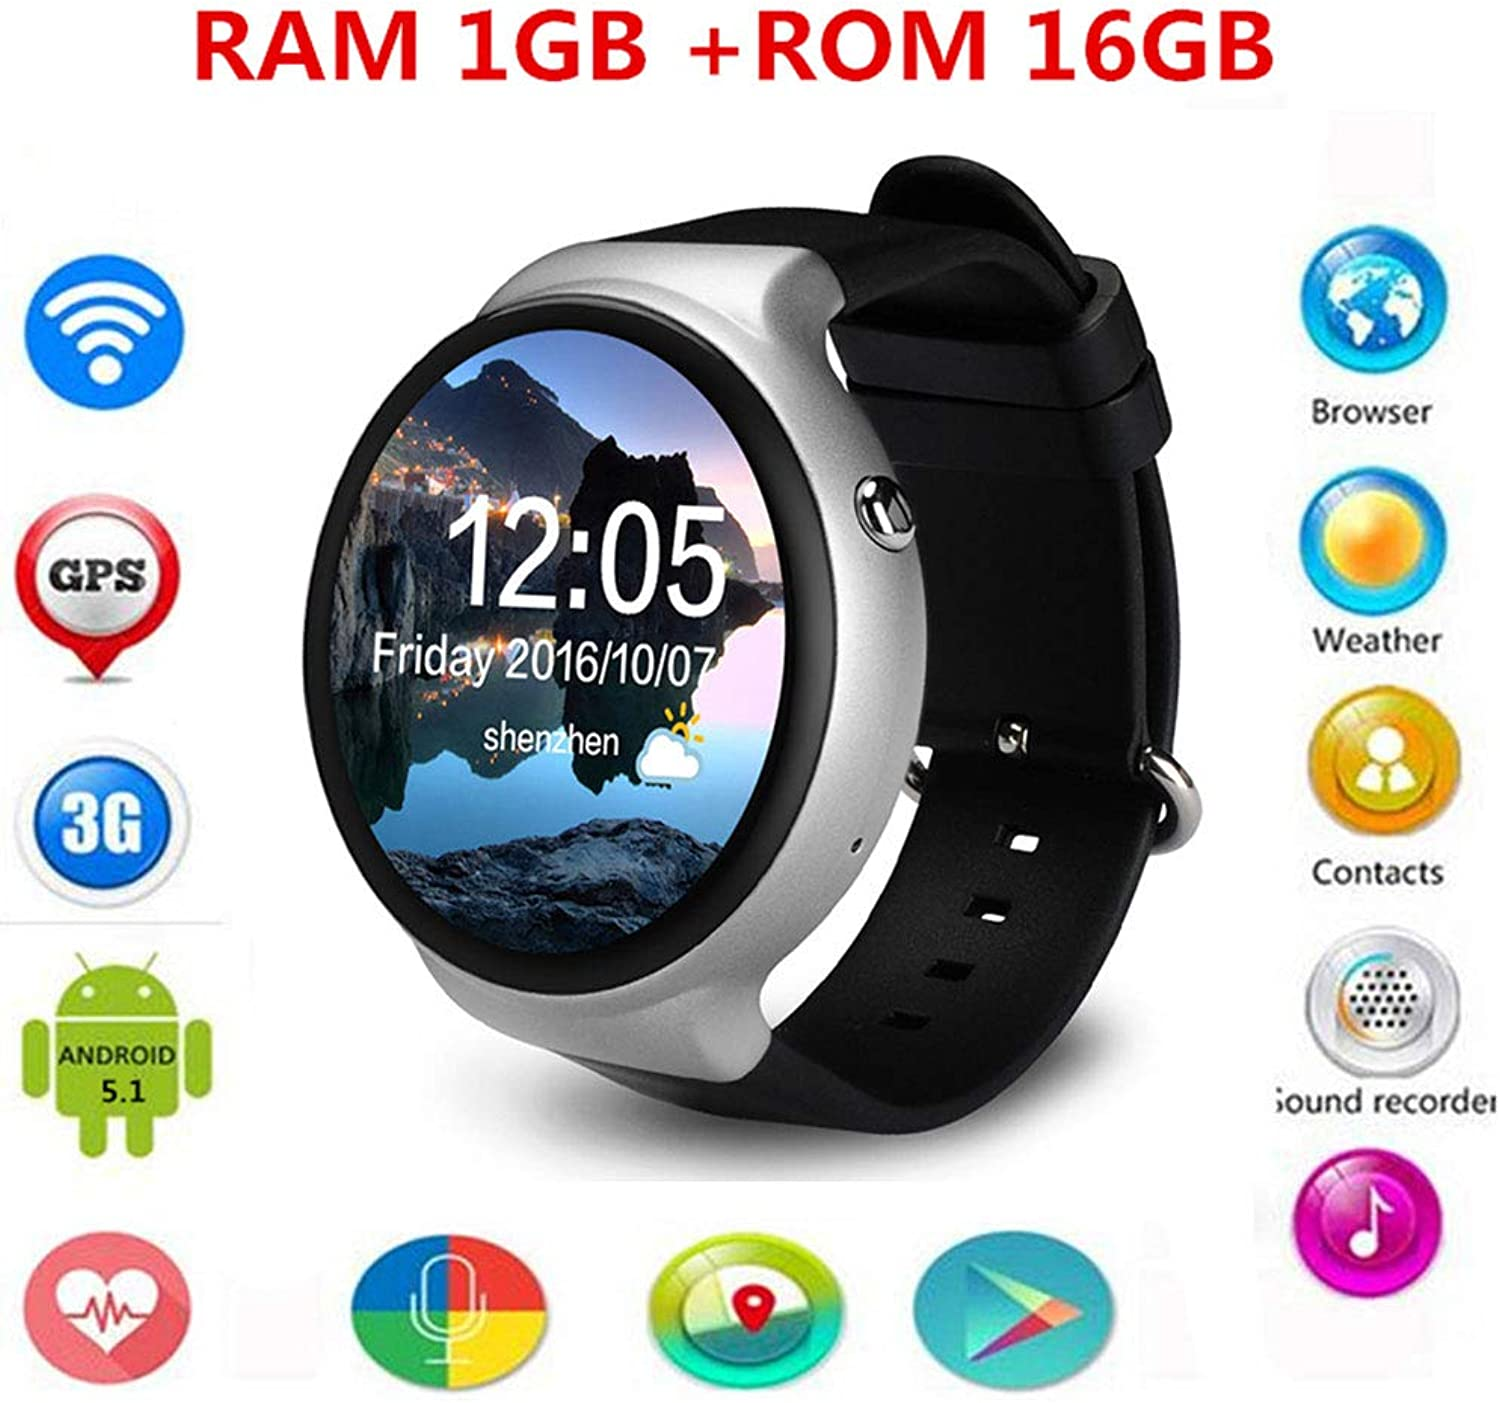 Fitness Tracker Smart Watch, Heart Rate Monitor Builtin Voice Search Support 3g Network Sim Card WiFi GPS blueetooth iOS Android Phone,Silver